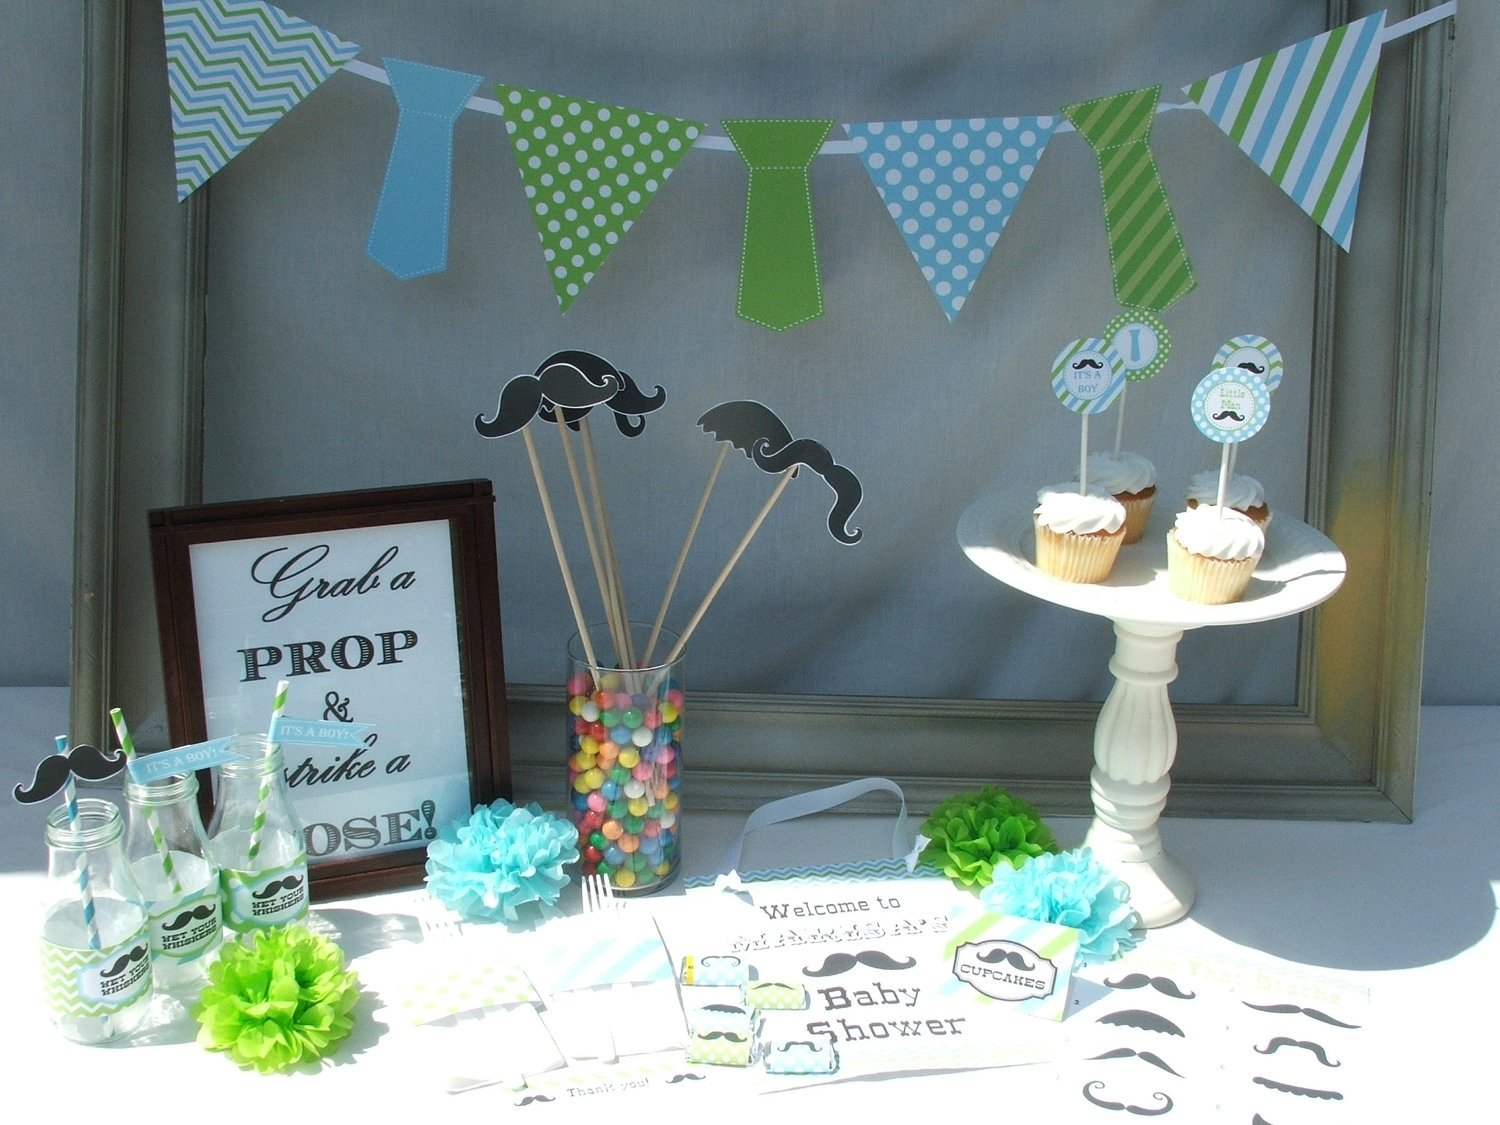 10 Trendy Baby Shower Decorations Ideas For Boys baby shower decoration ideas for boys omega center ideas for 2020